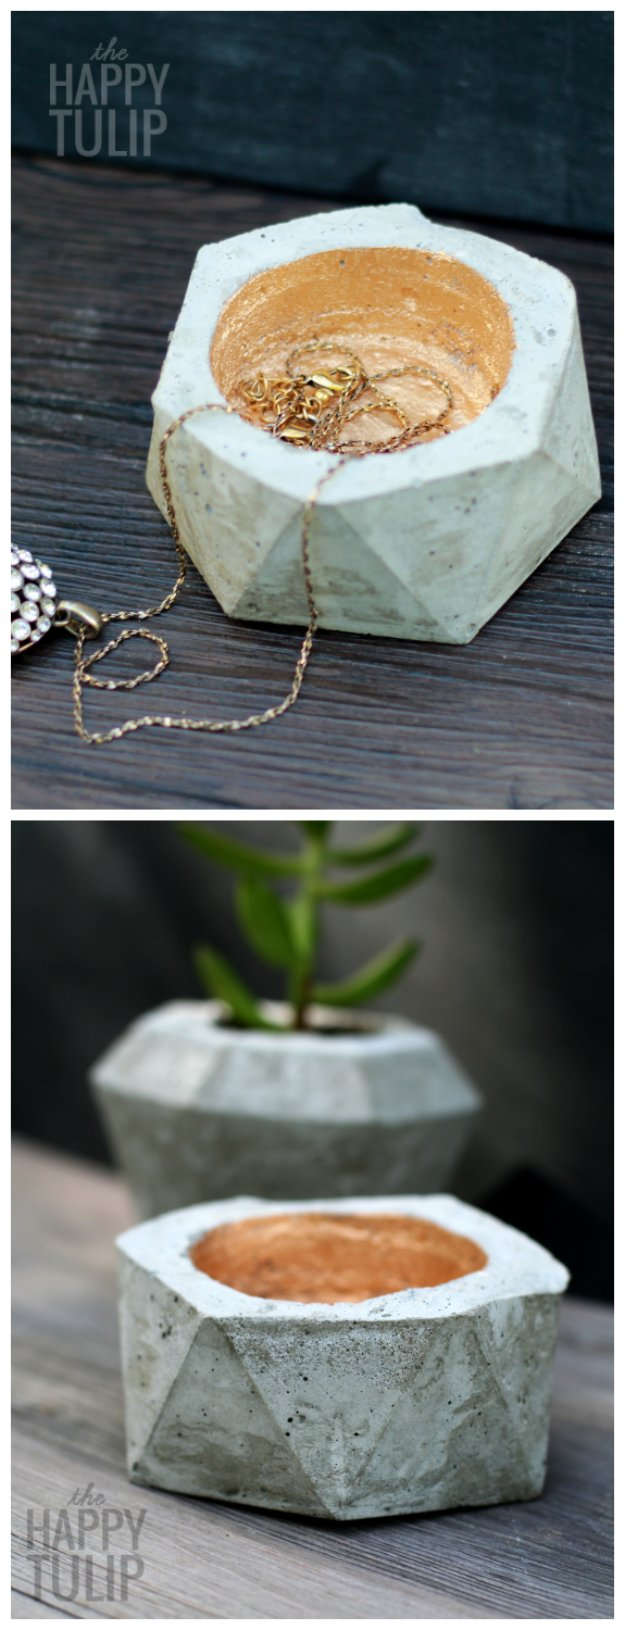 43 DIY concrete crafts - DIY Geometric Concrete Jewelry Holders- Cheap and creative projects and tutorials for countertops and ideas for floors, patio and porch decor, tables, planters, vases, frames, jewelry holder, home decor and DIY gifts #gifts #diy-